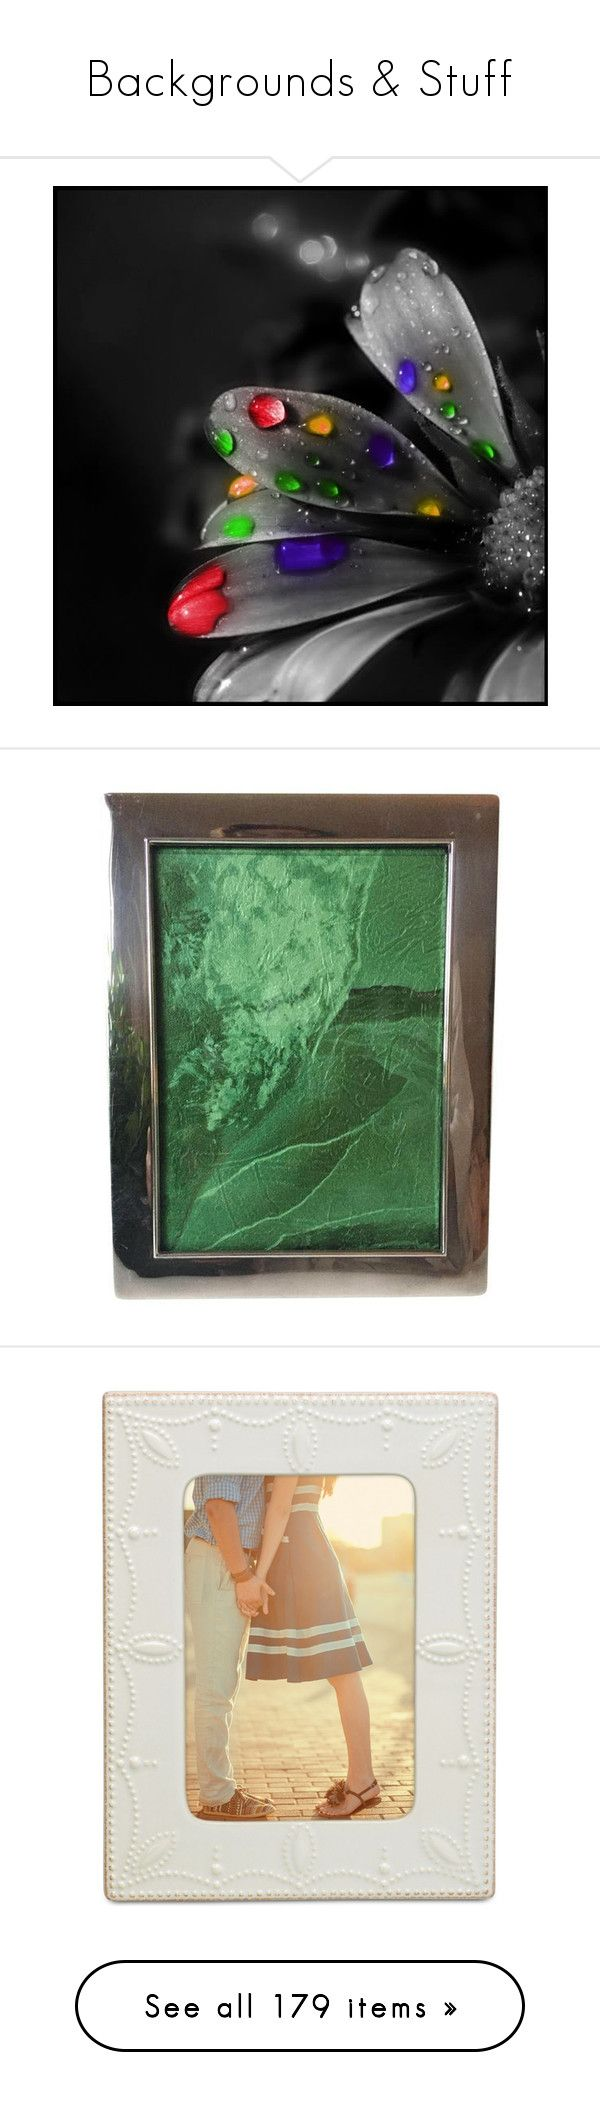 Buy Sheffield Home Picture Frames Home Decor Ideas